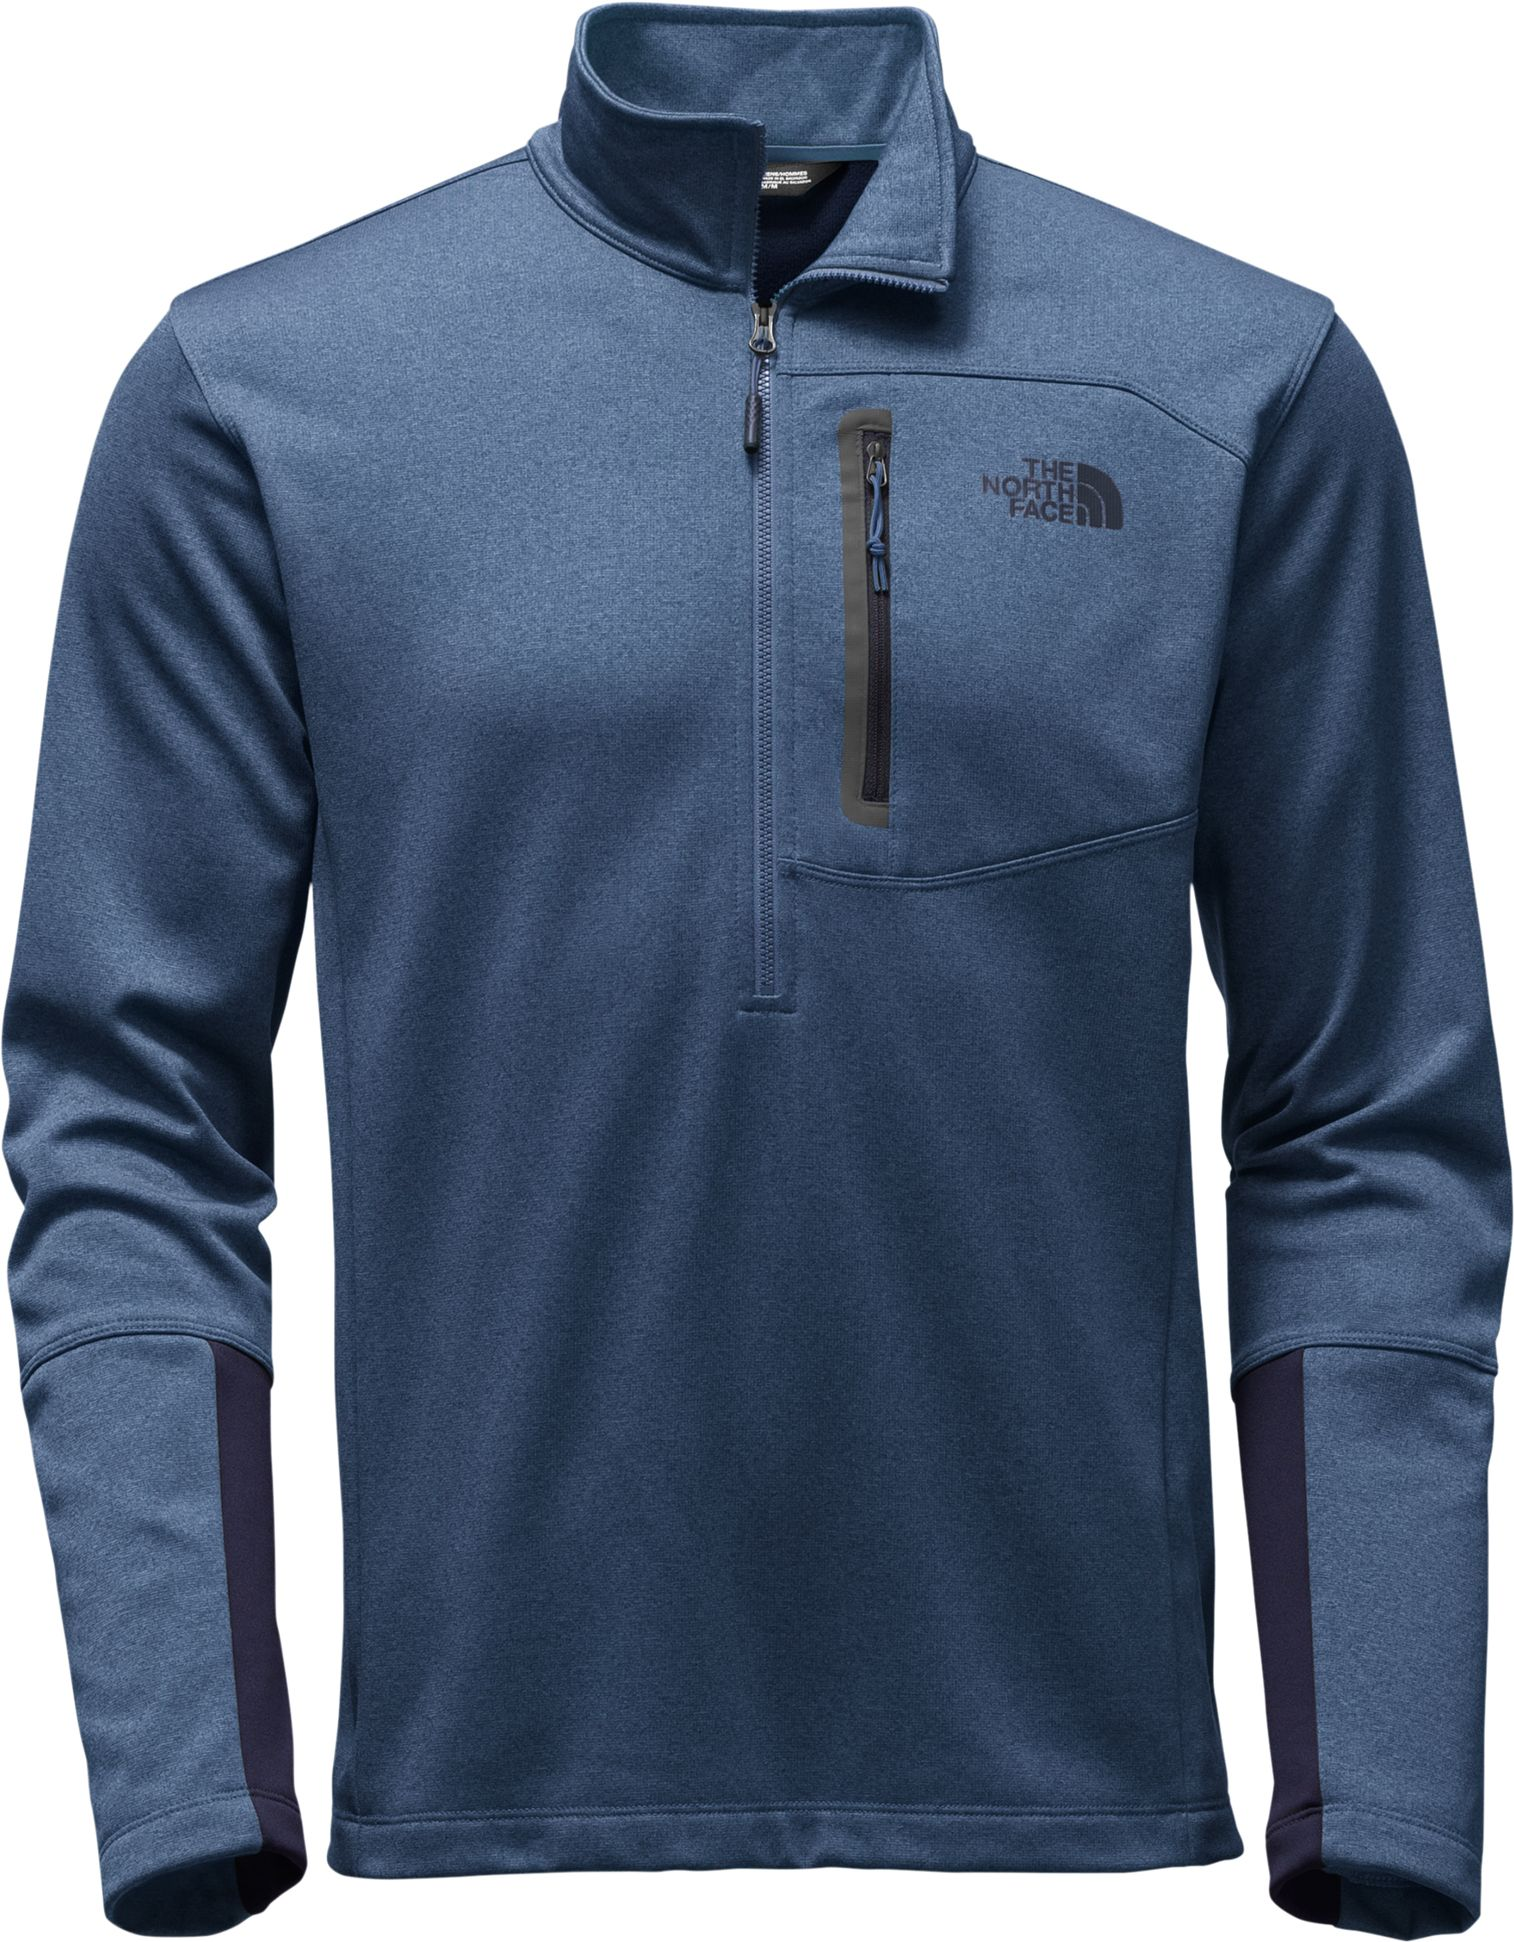 The North Face Men's Canyonlands Half Zip Fleece Pullover | DICK'S ...